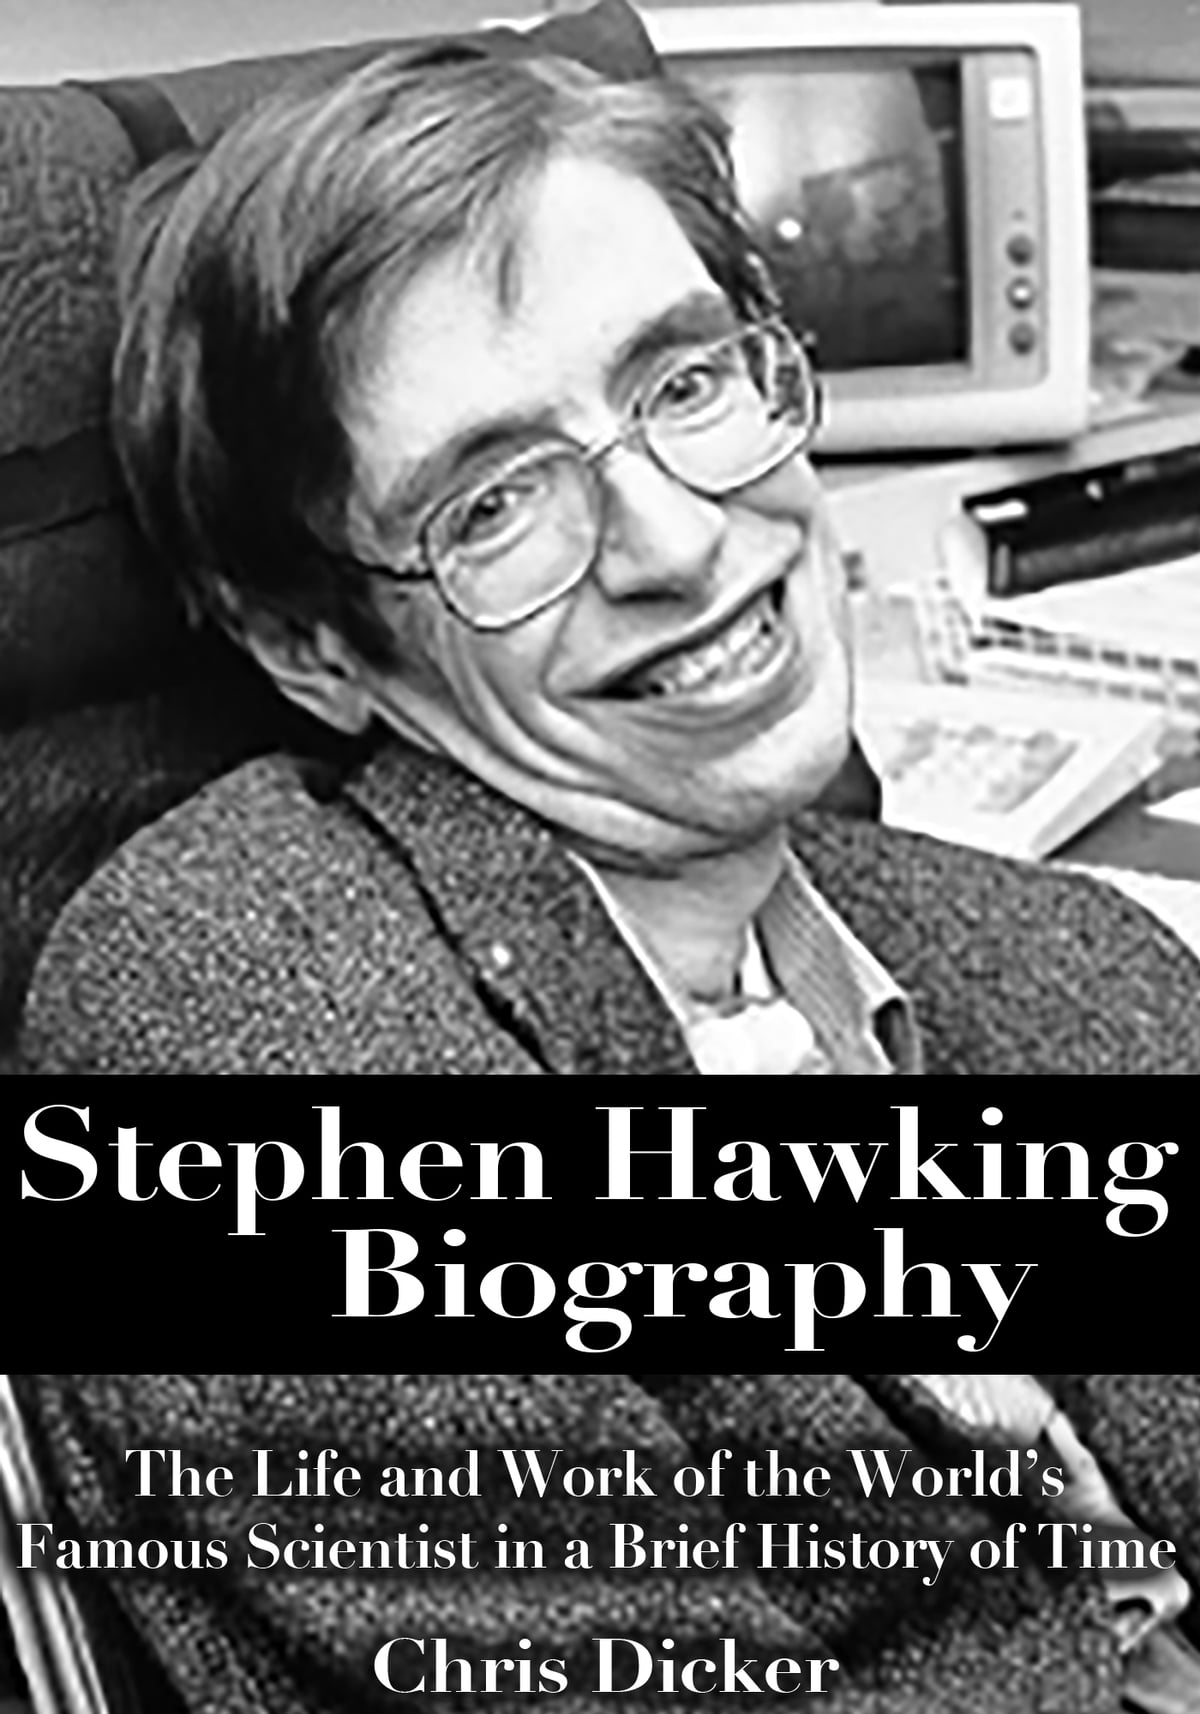 Stephen Hawking Biography The Life And Work Of The Worlds Famous Scientist In A Brief History Of Time Ebook By Chris Dicker Rakuten Kobo